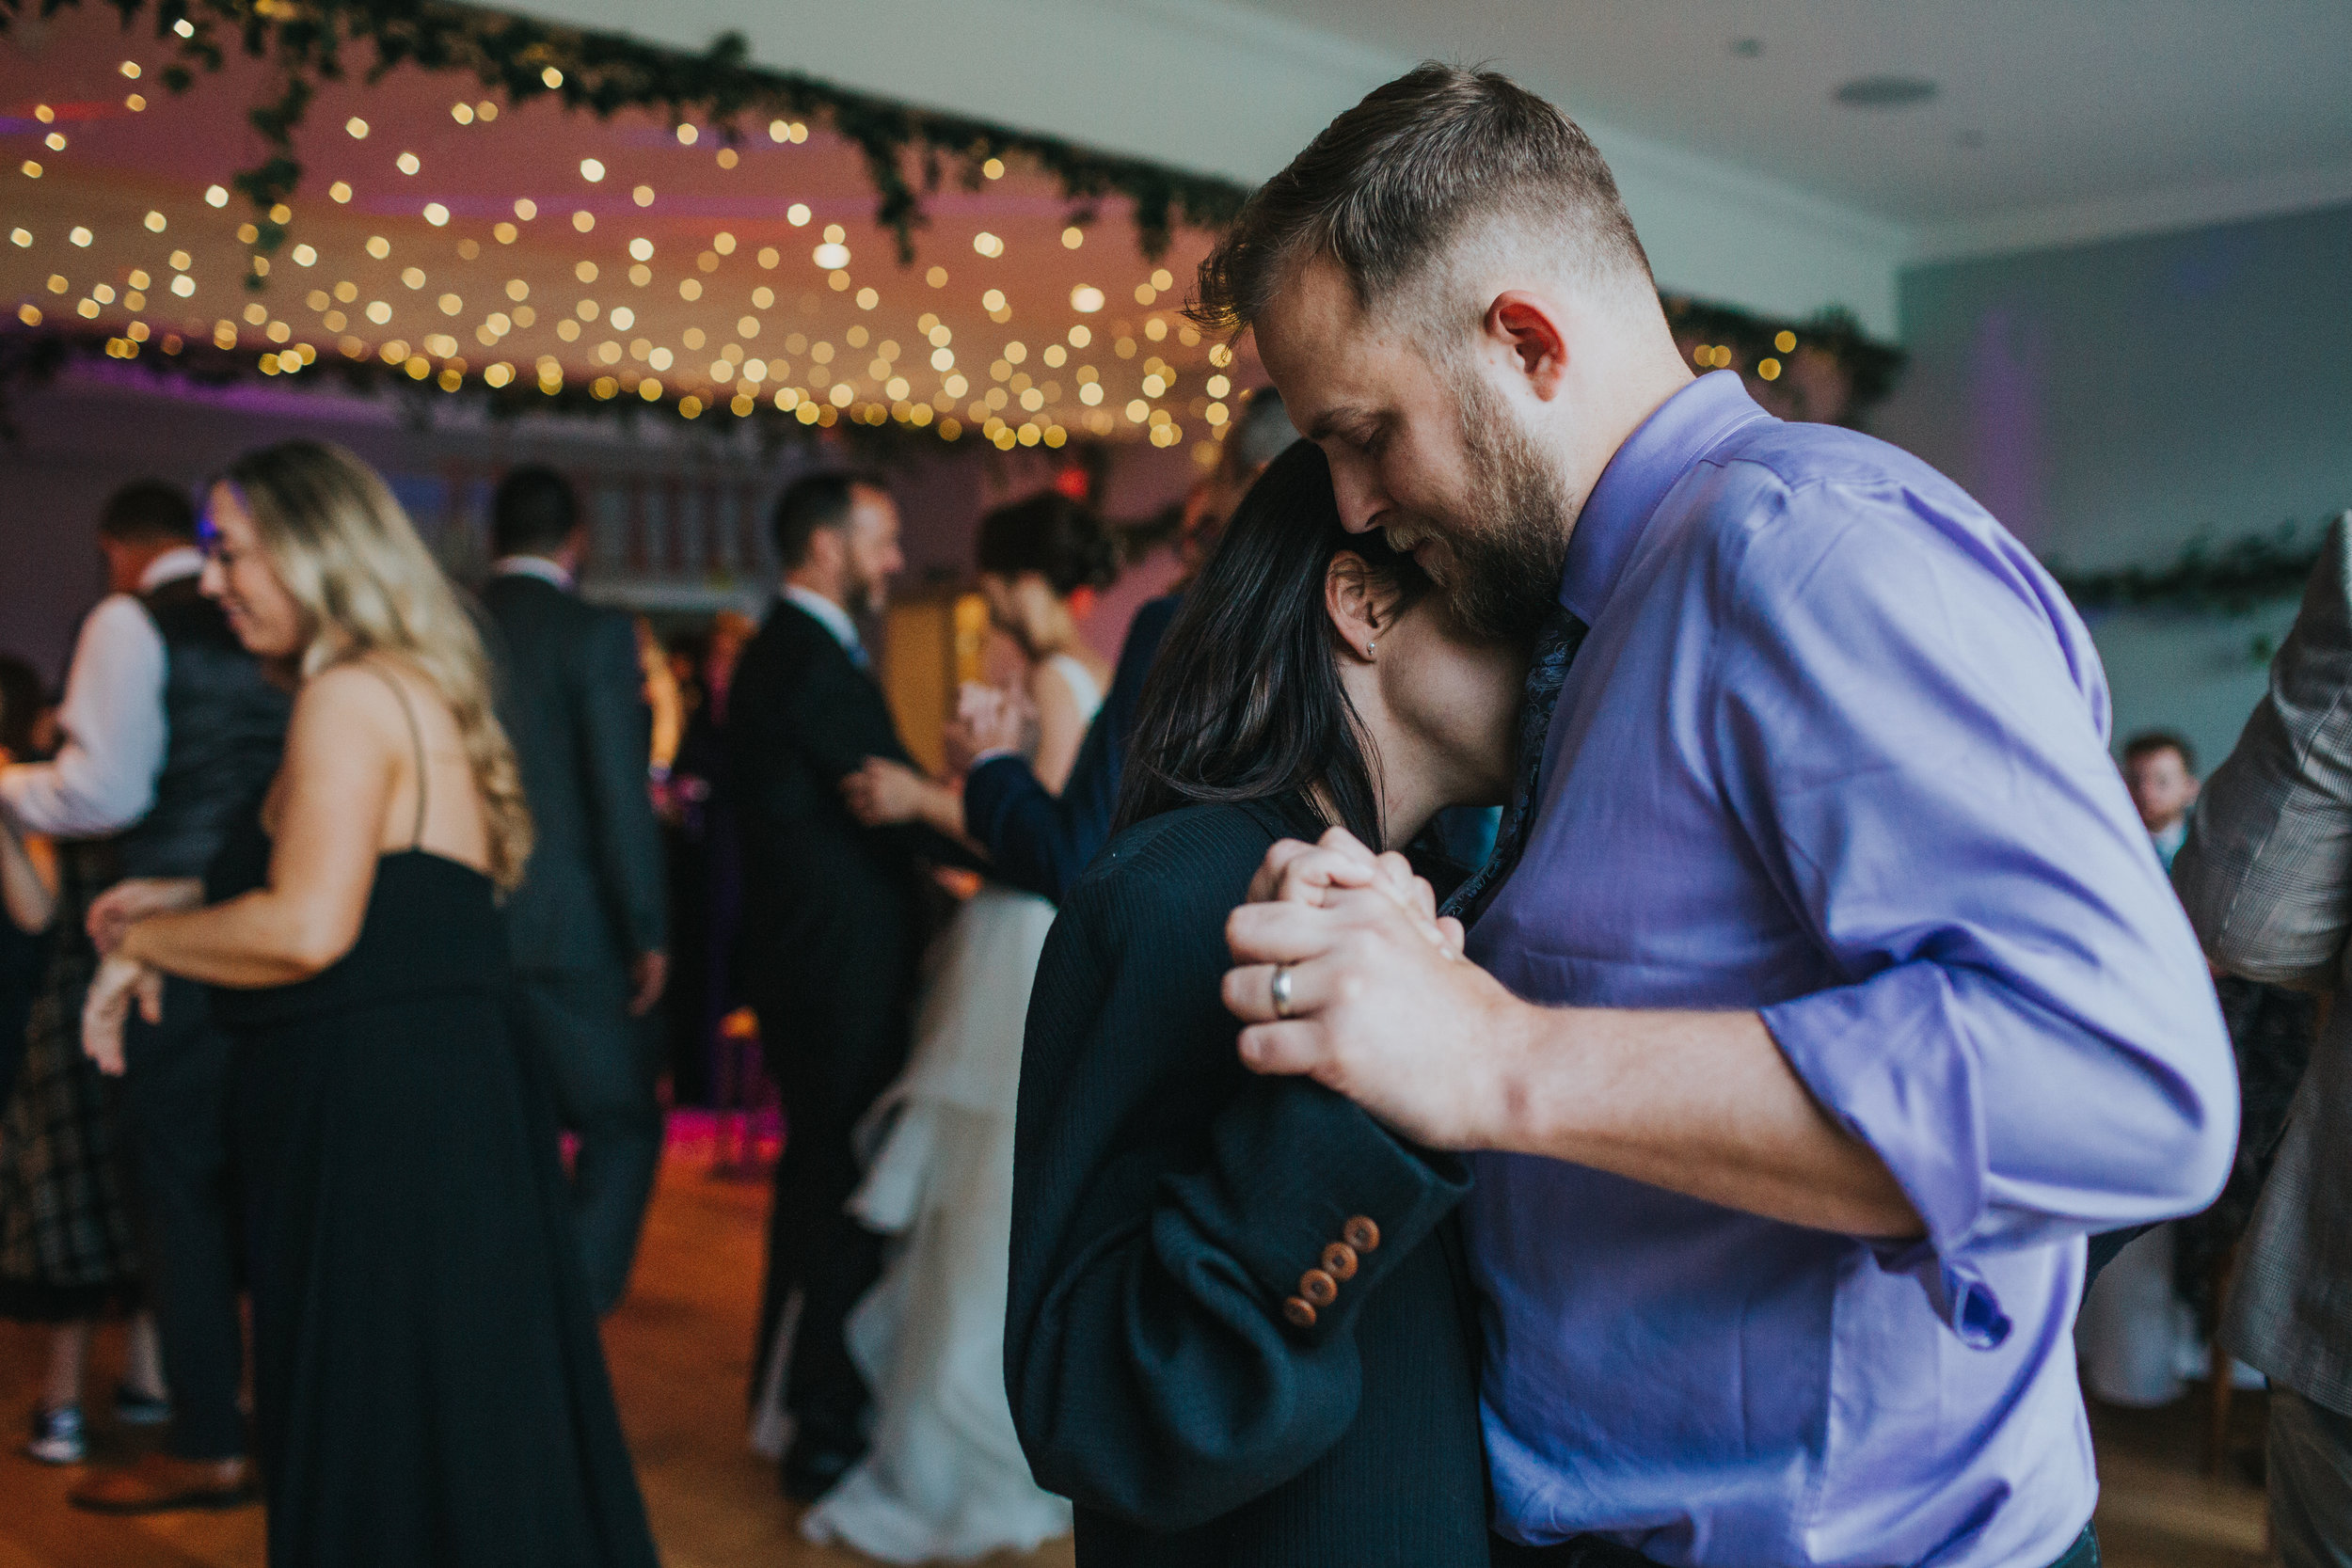 Wedding guests have a romantic moment on the dance floor.